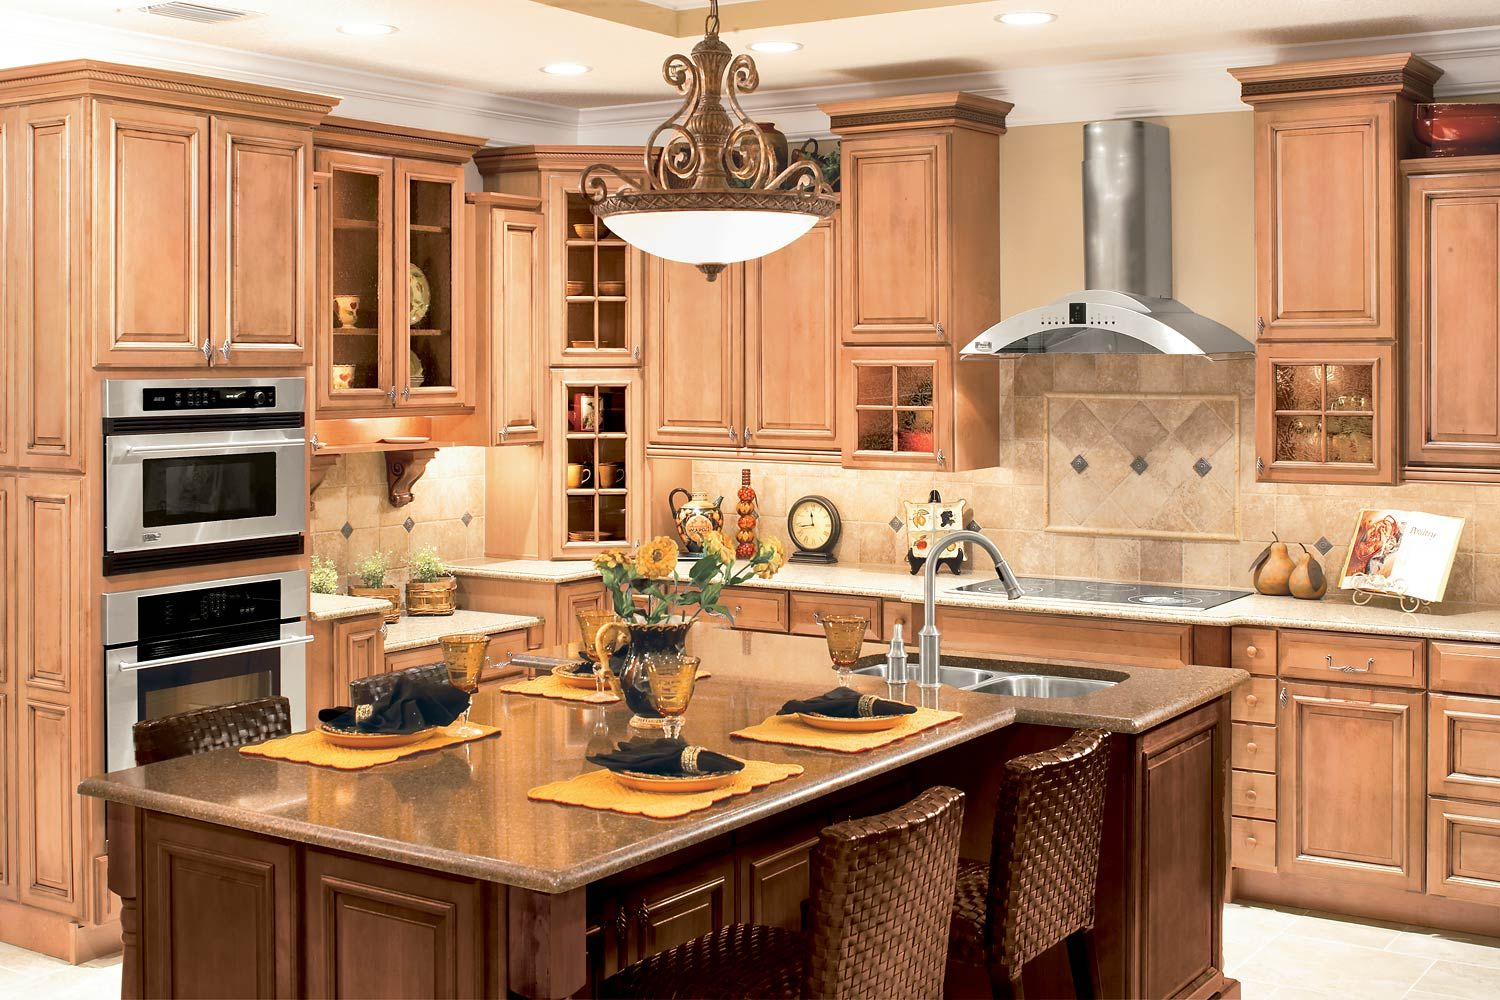 Kitchen Traditional Kitchen Design With Honey Maple Kitchen Cabinet And Brown Granite Quality Kitchen Cabinets Maple Kitchen Cabinets Luxury Kitchen Cabinets